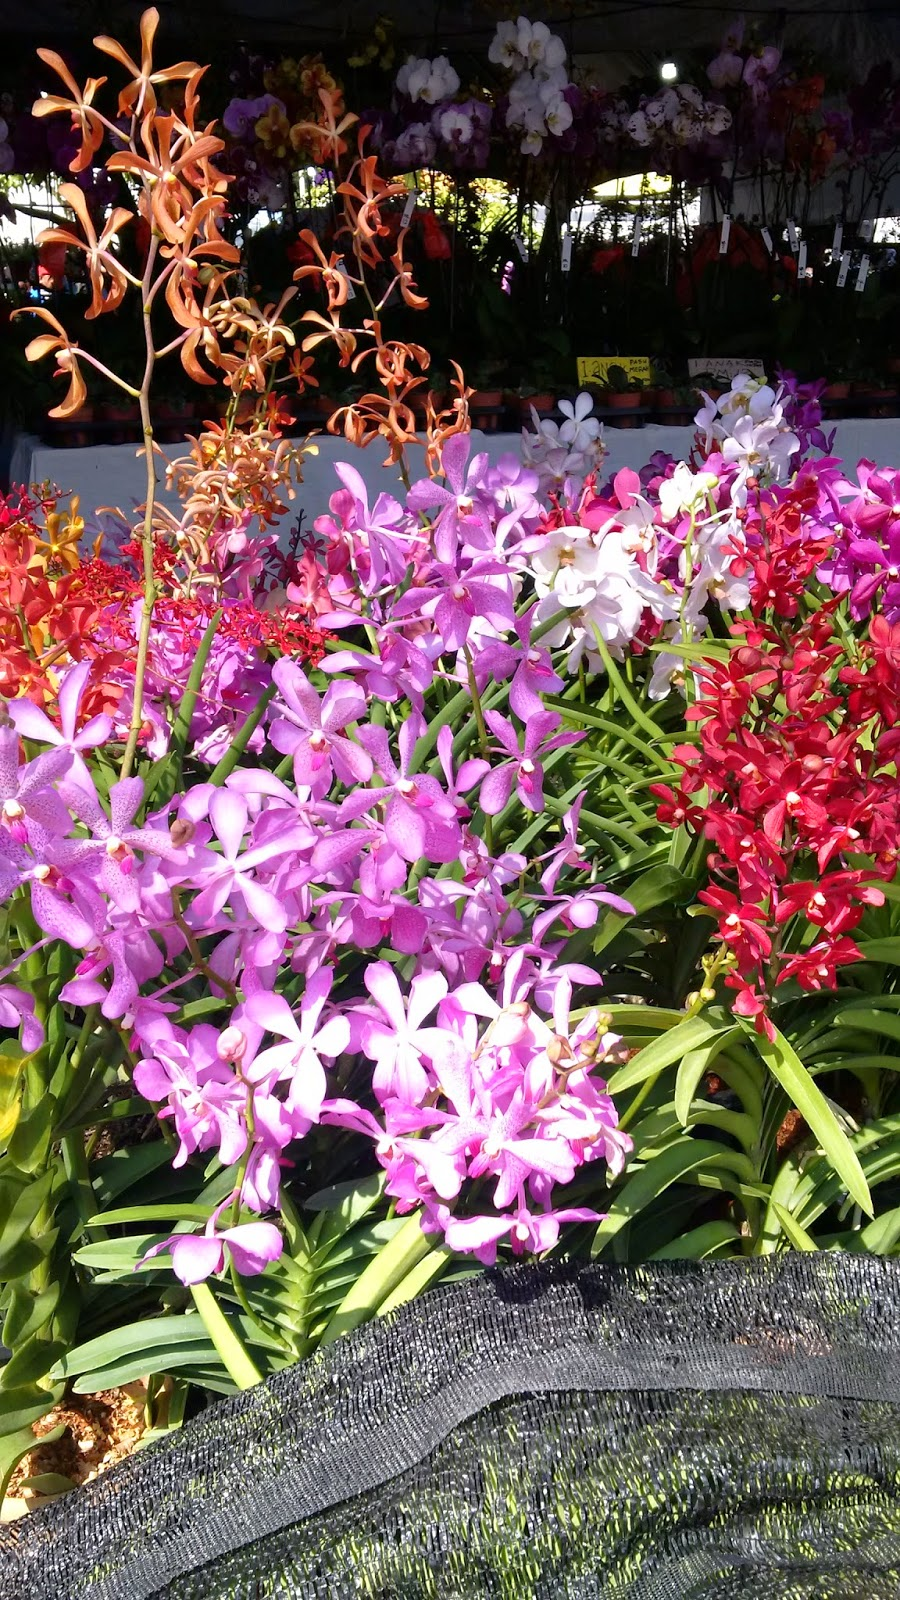 orchids, malaysia orchids, malaysia flower bazaar, flower exposition, flowers malaysia, colorful flowers, gardening